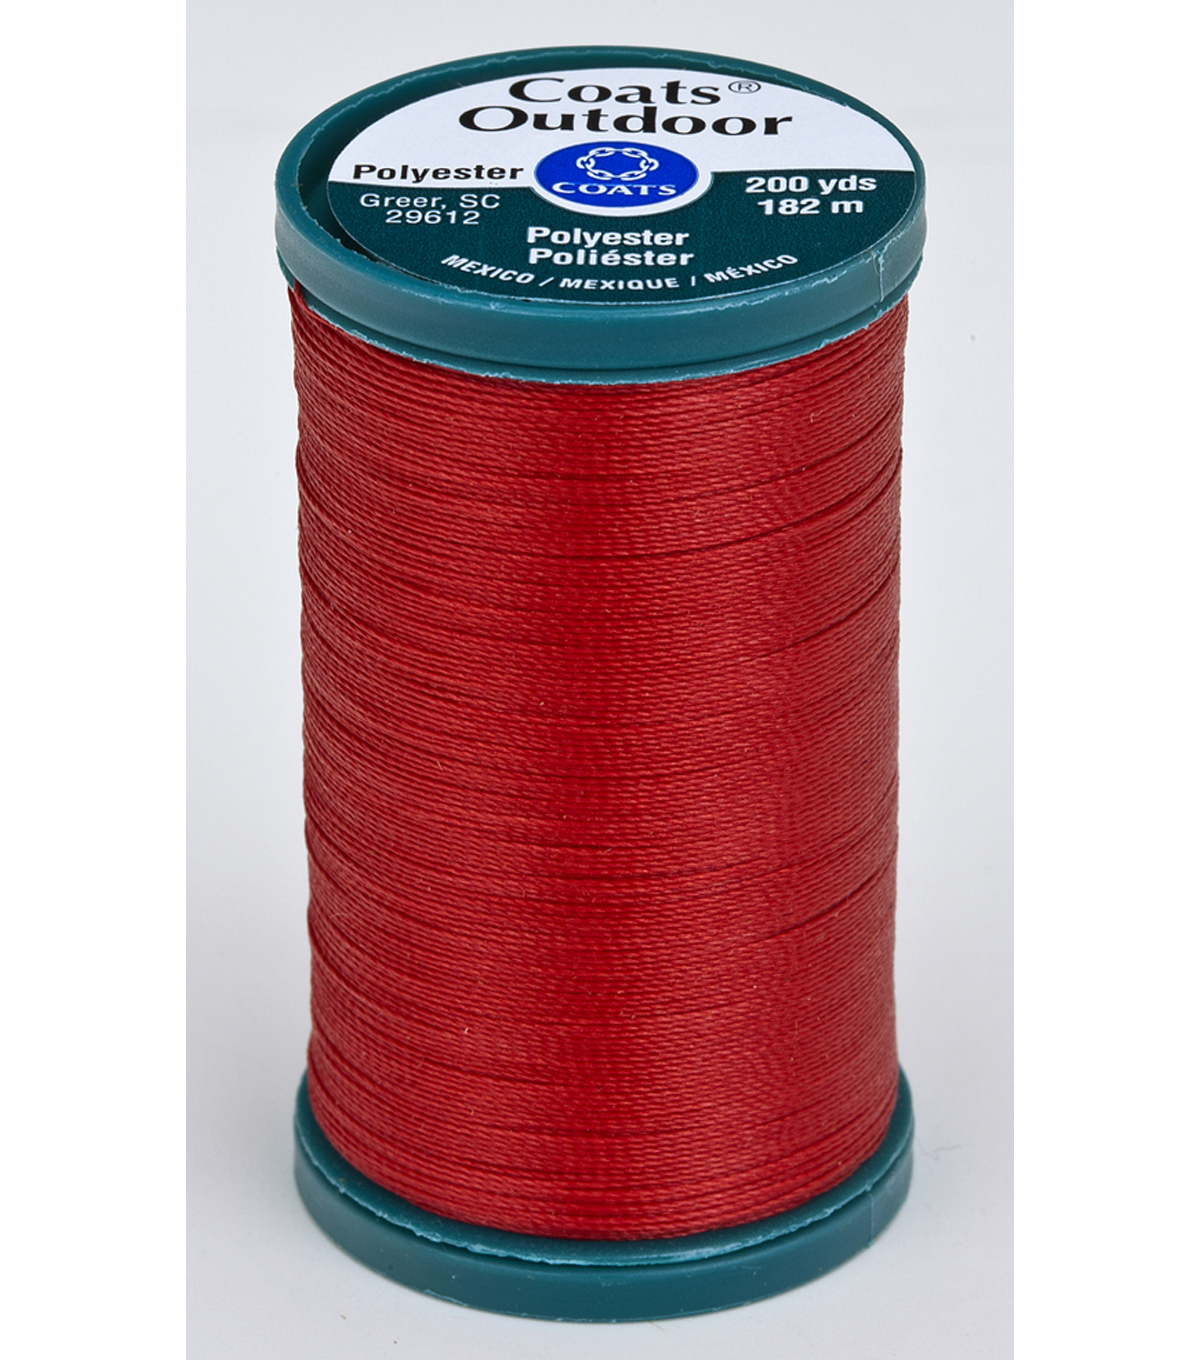 Coats & Clark Outdoor 200yd Thread, Coats Outdoor 200yd Cherry Red